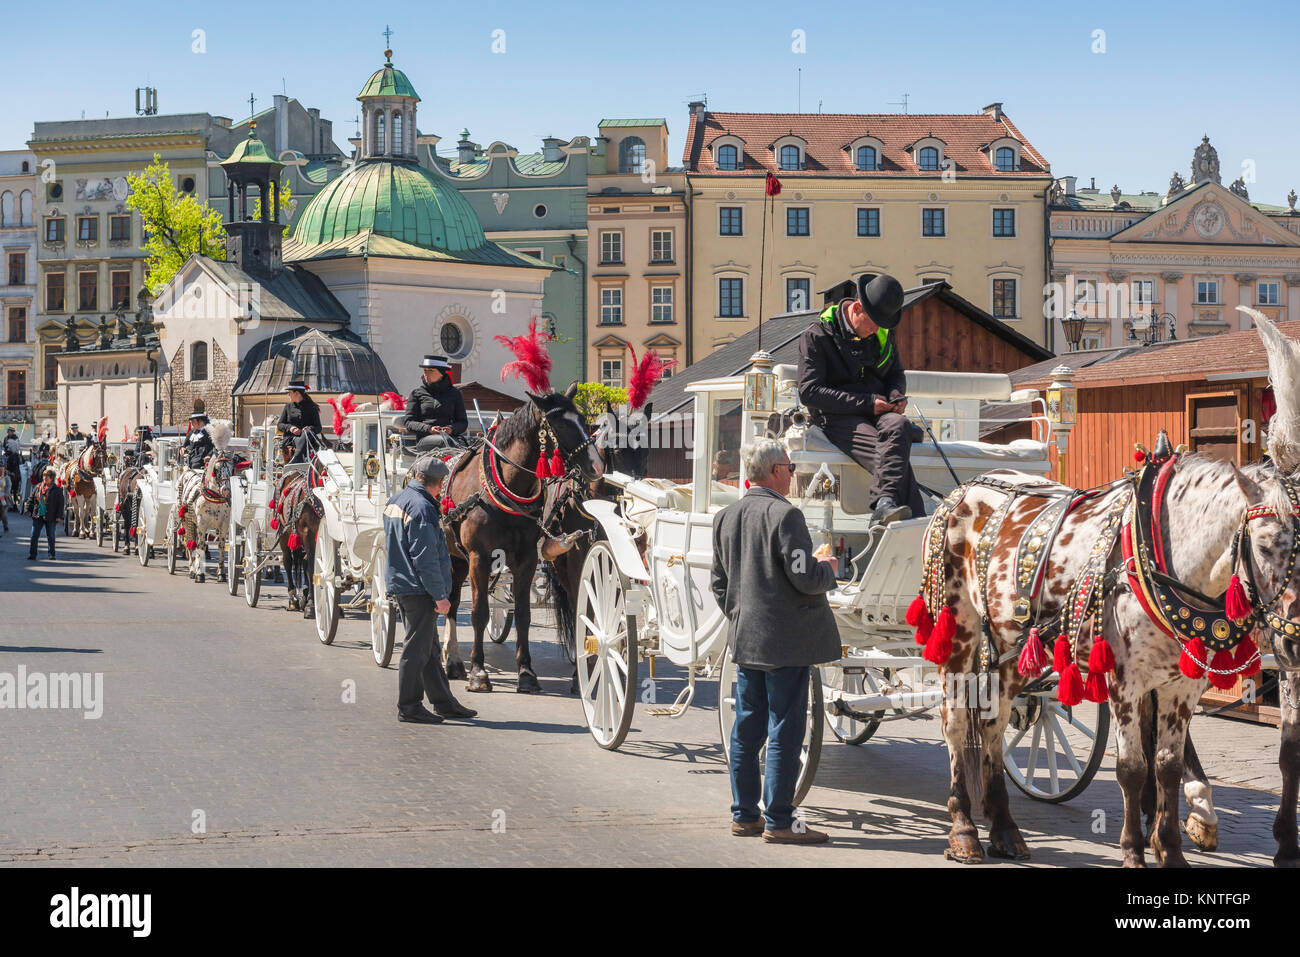 Krakow carriage, horse-drawn carriages available for tours of the city of Krakow line up in the city's Market - Stock Image